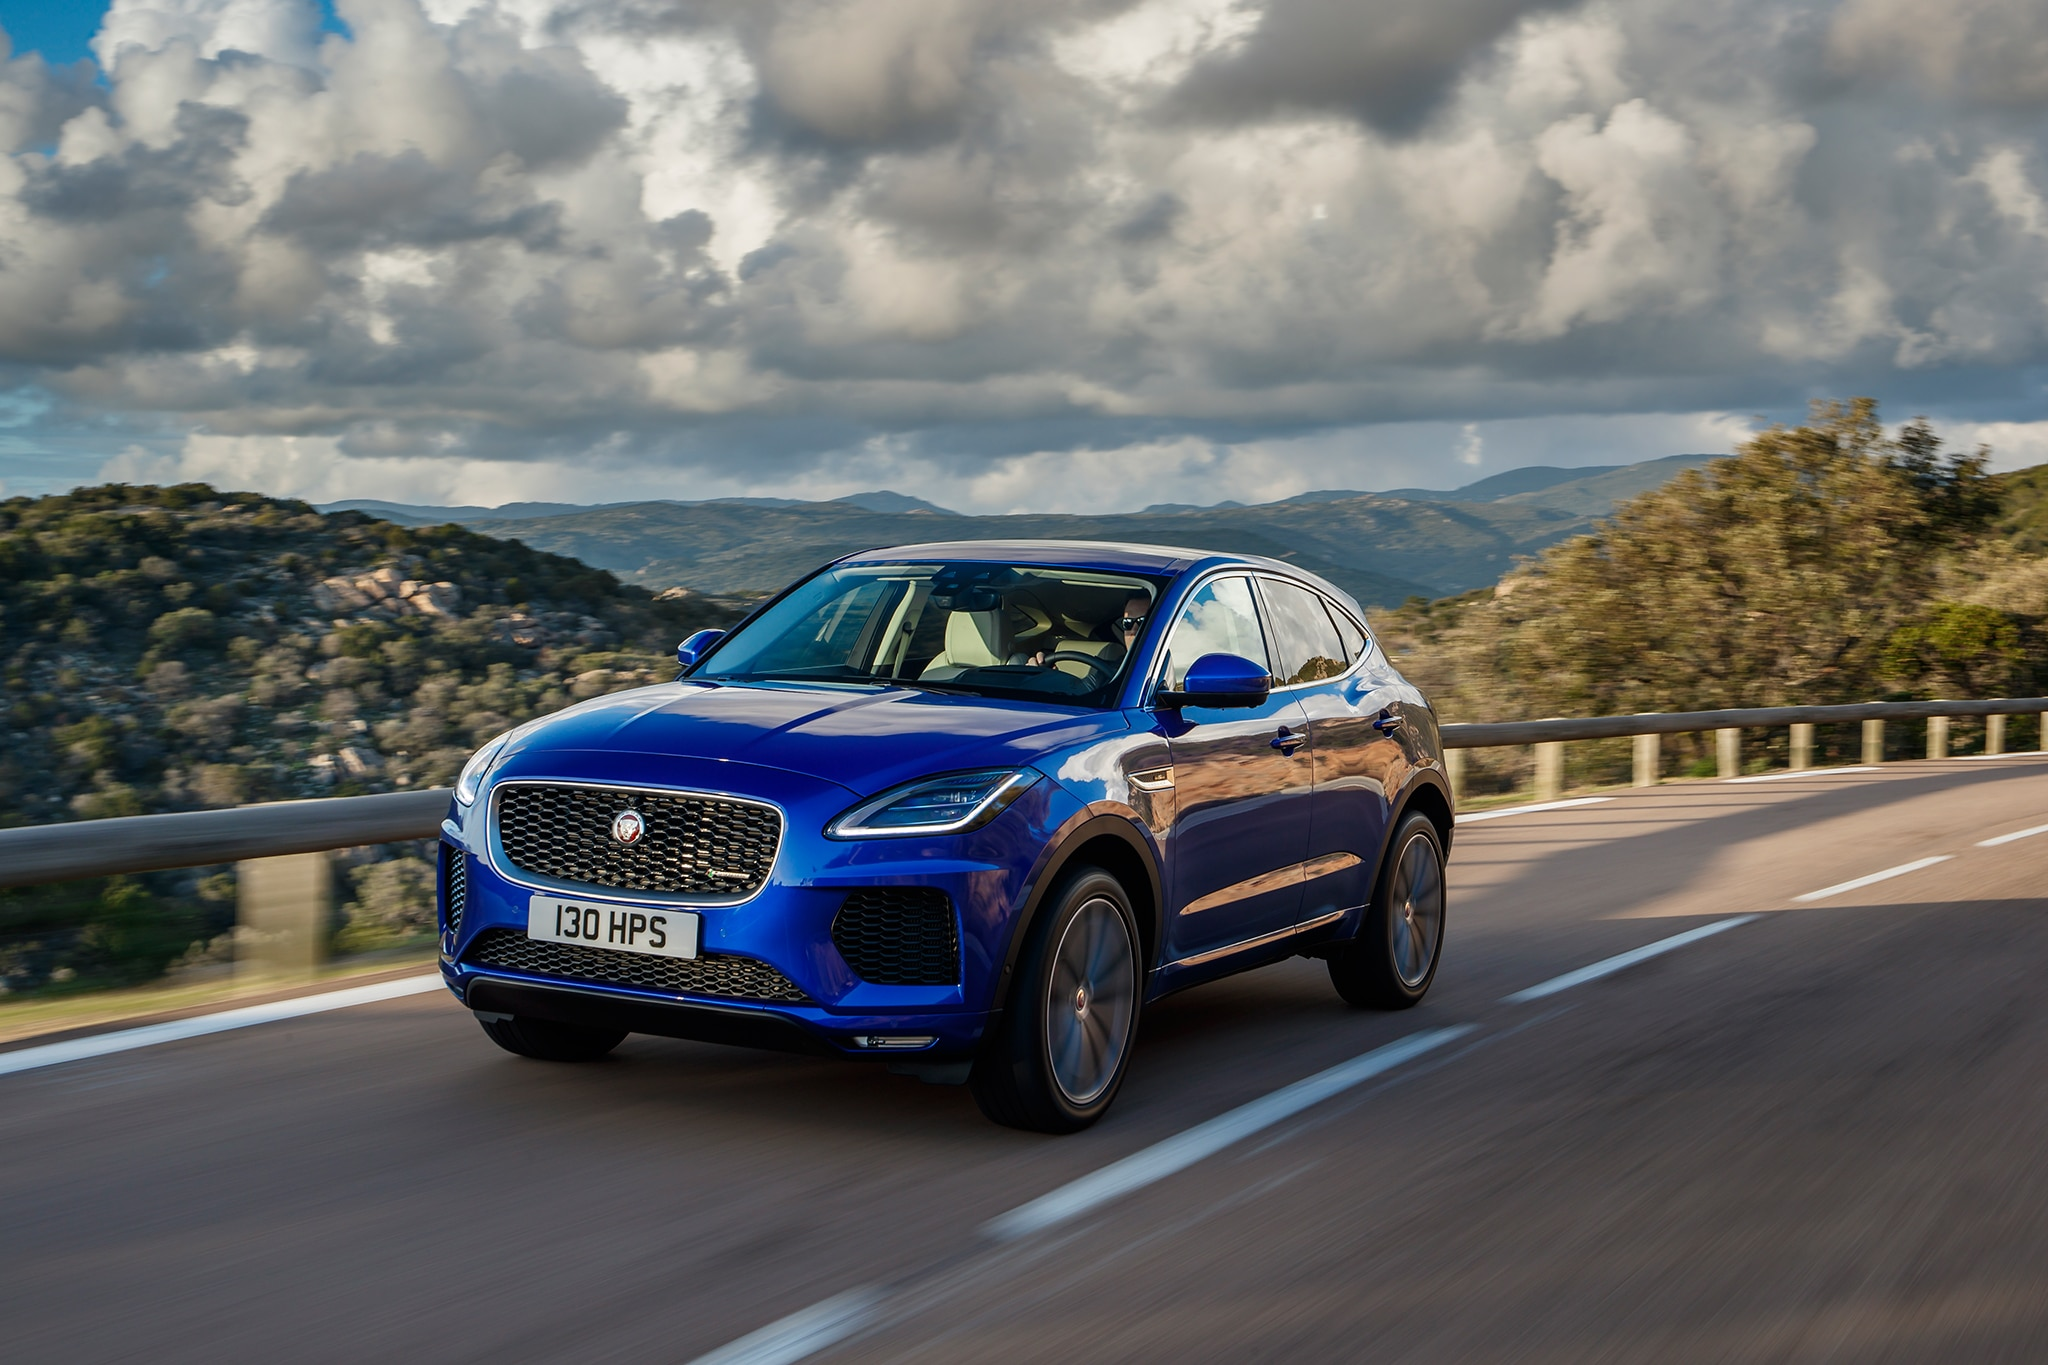 2018 jaguar e pace first drive review automobile magazine. Black Bedroom Furniture Sets. Home Design Ideas